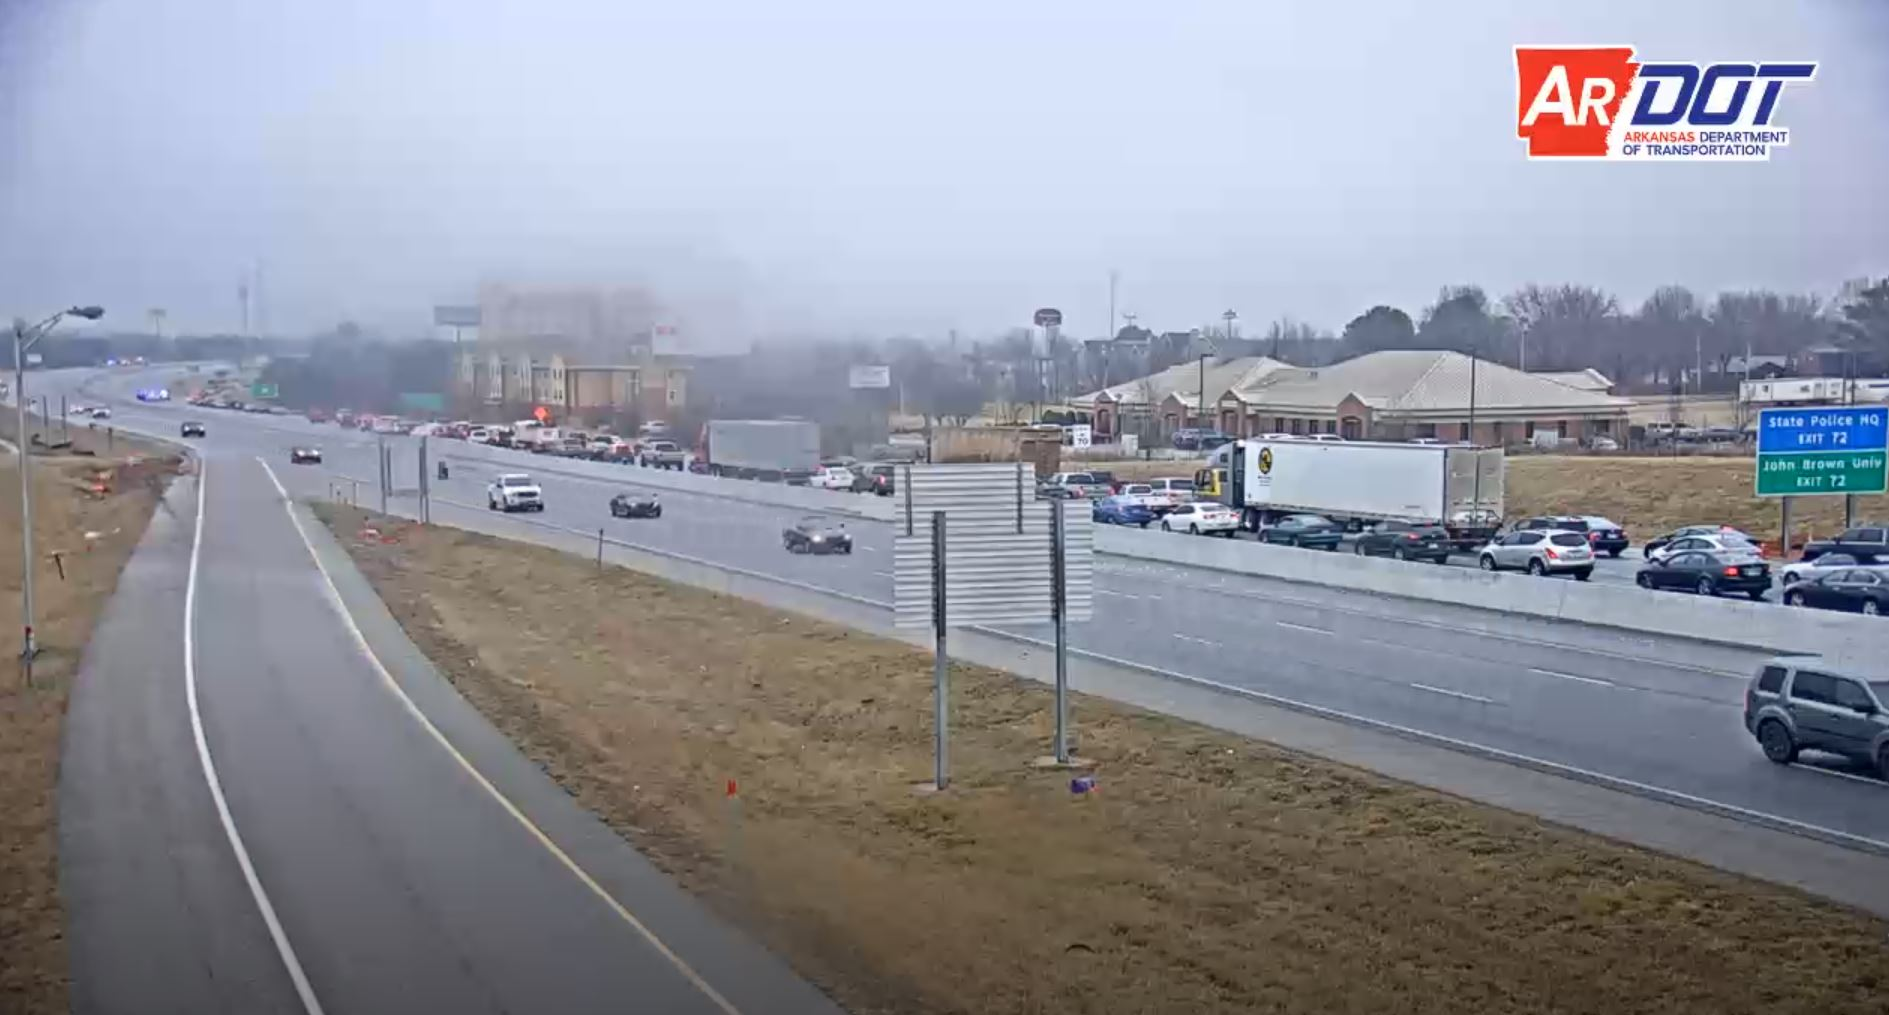 Traffic diverted off Interstate 49 at the U.S. 412 exit in Springdale. The interstate was closed for two hours so the icy overpass could be treated. (Photo courtesy of ArDOT)